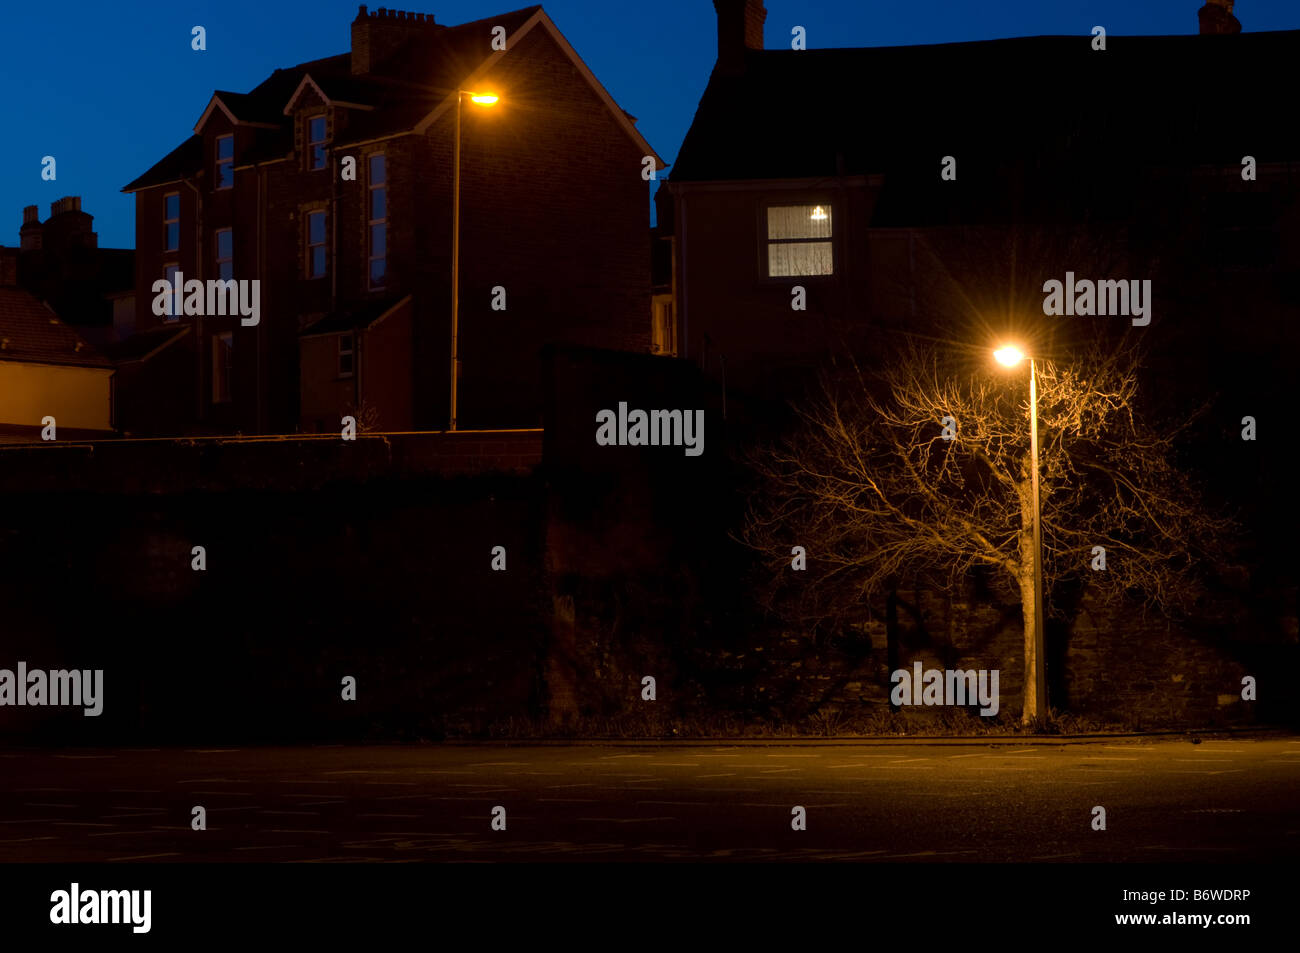 Houses and street lamps at night - deserted empty street scene in a town, UK - Stock Image